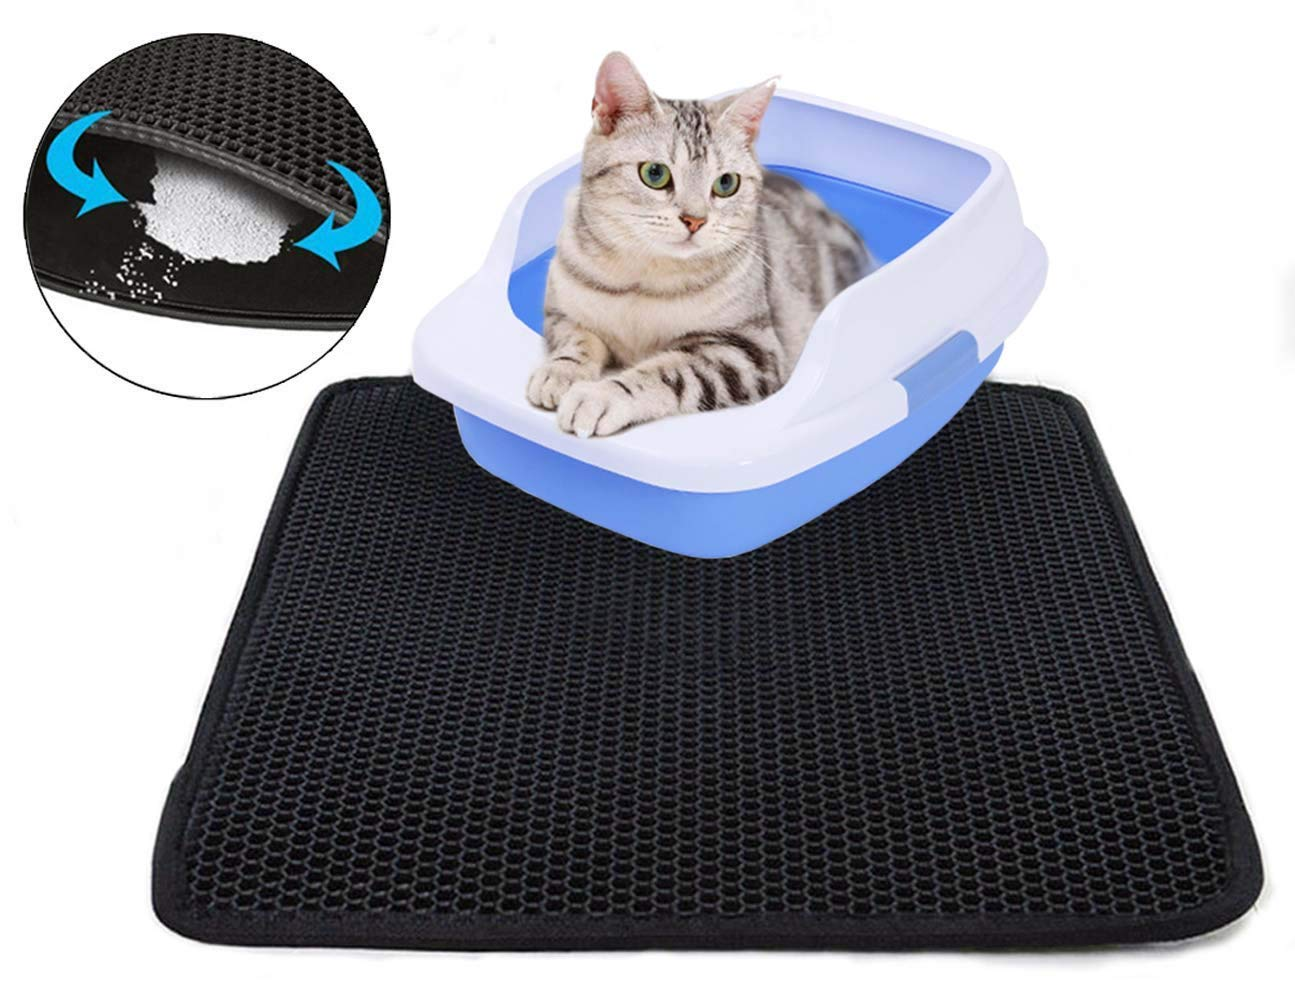 SPOMR Cat Litter Mat Litter XL Double Layer Honeycomb Cat and Dog Litter Trapper with Waterproof Base Layer/Large Litter Mat/EVA Foam Rubber - Cats Litter Mat for Litter Box(26x25 in)